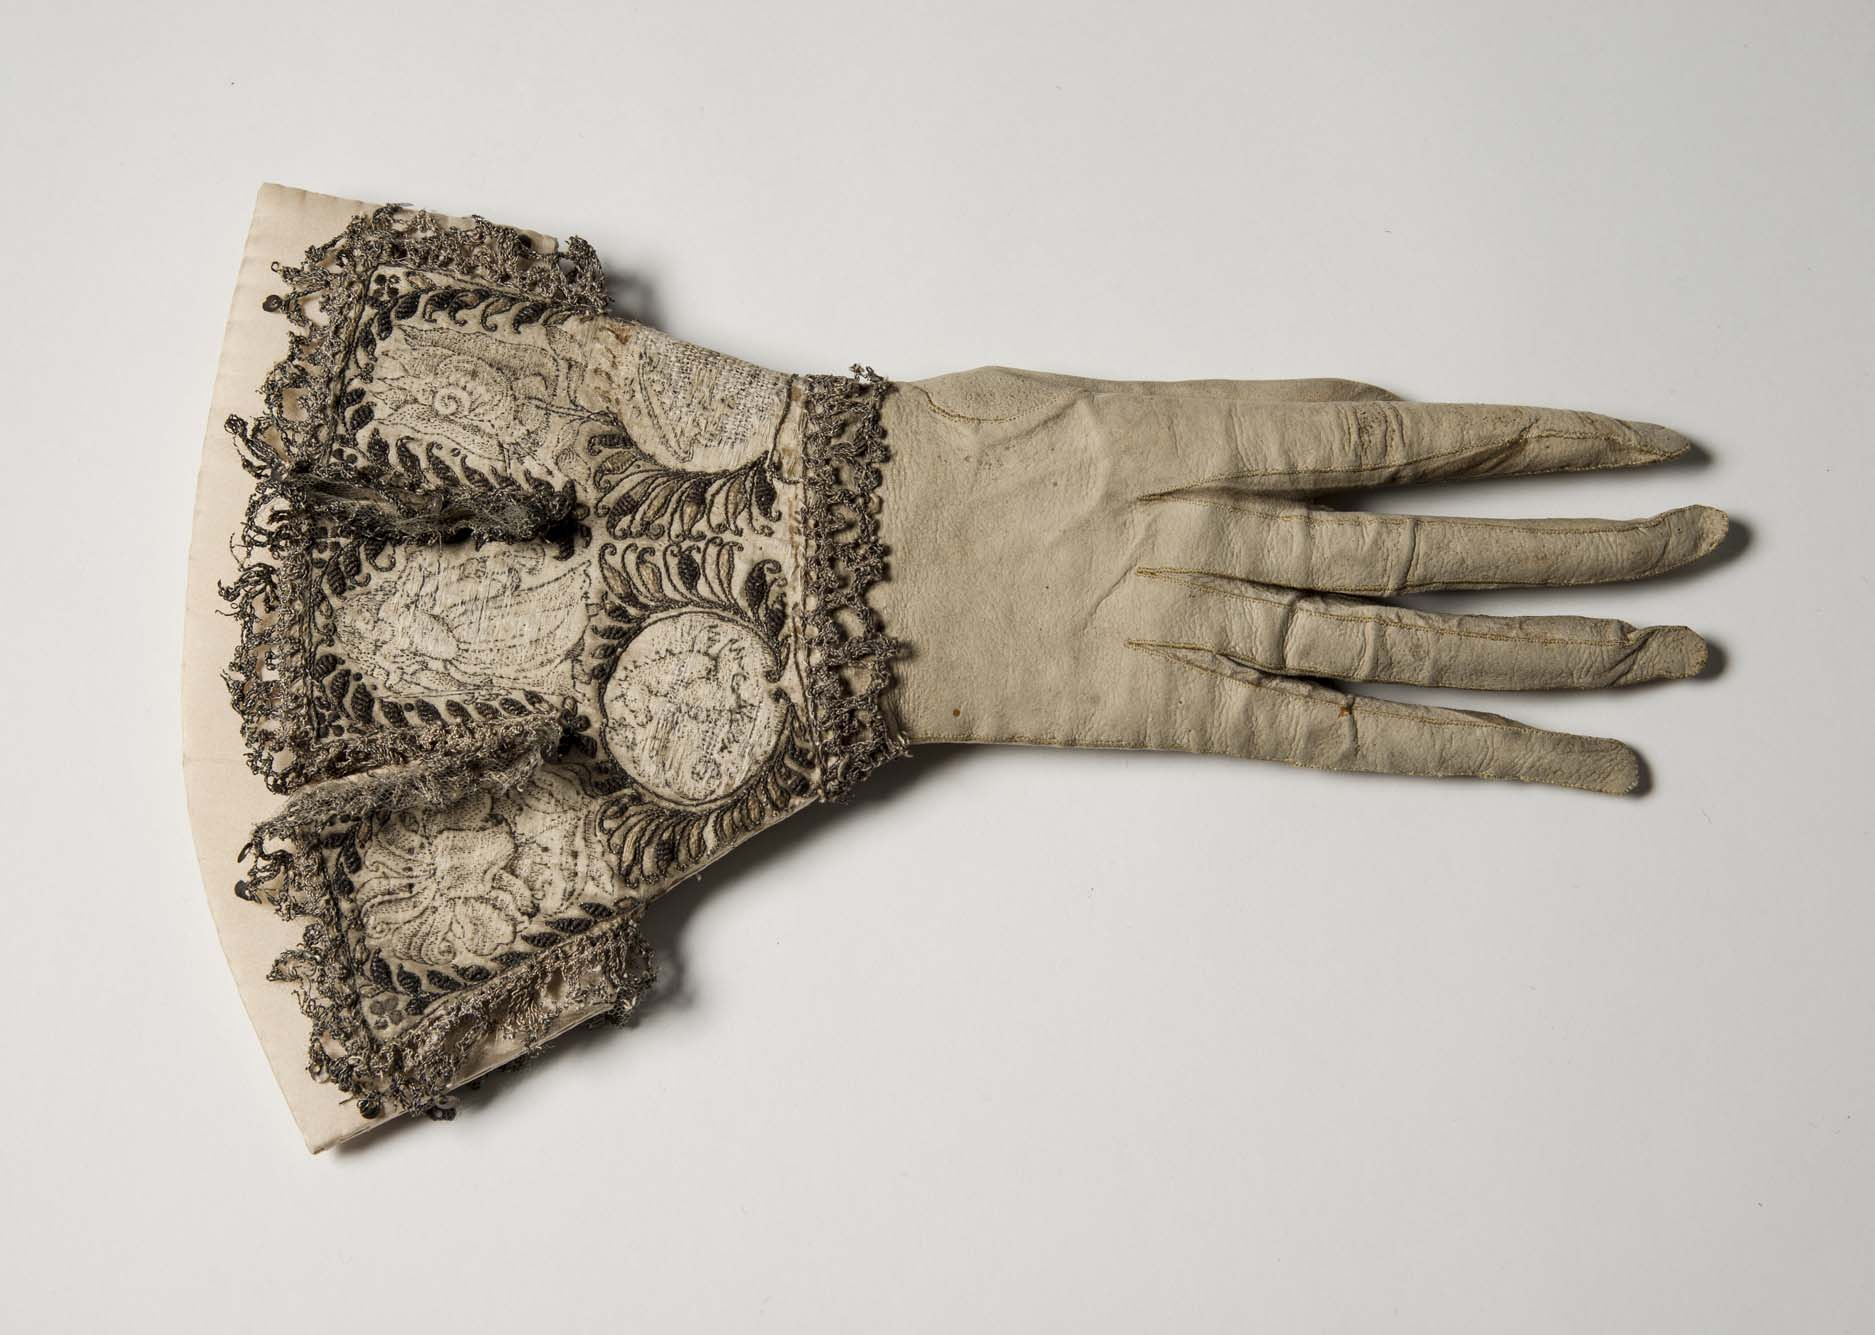 a heavily cuffed and embroidered leather glove